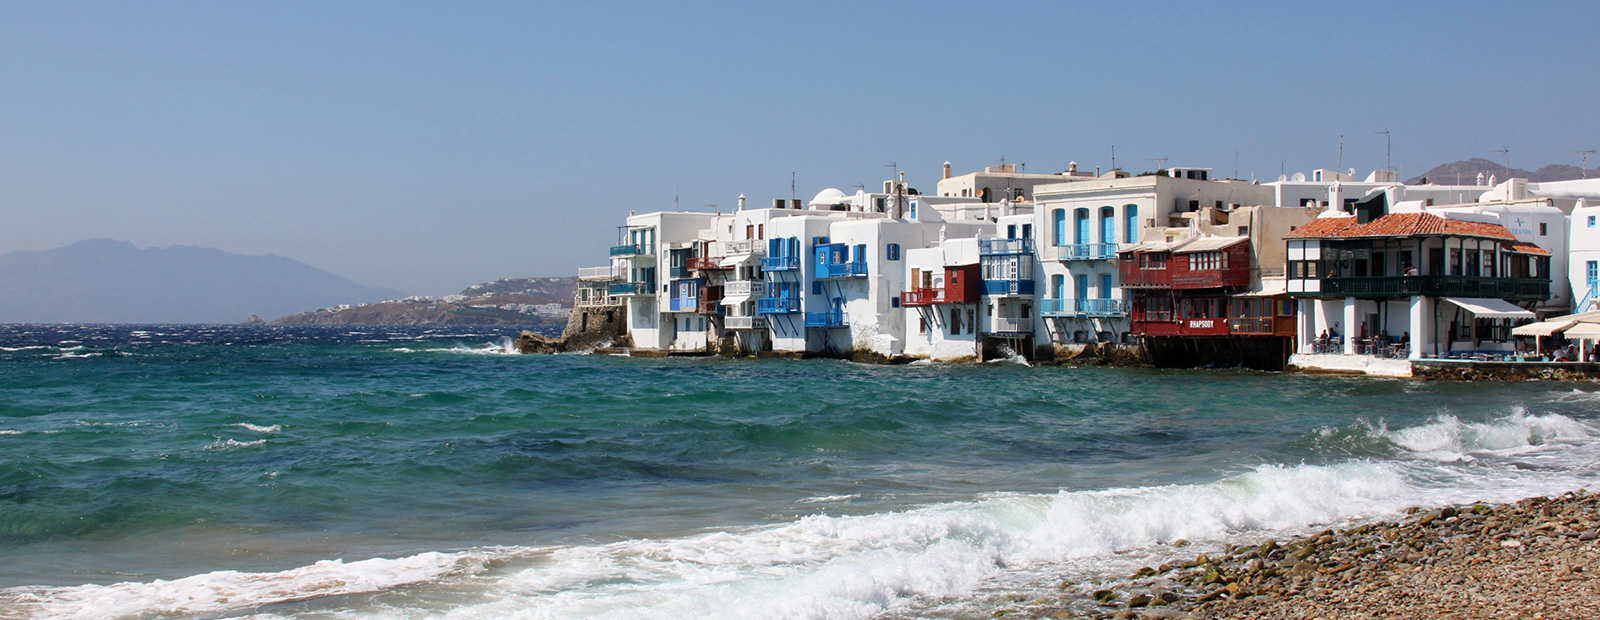 Luxurious holiday homes on Mykonos island